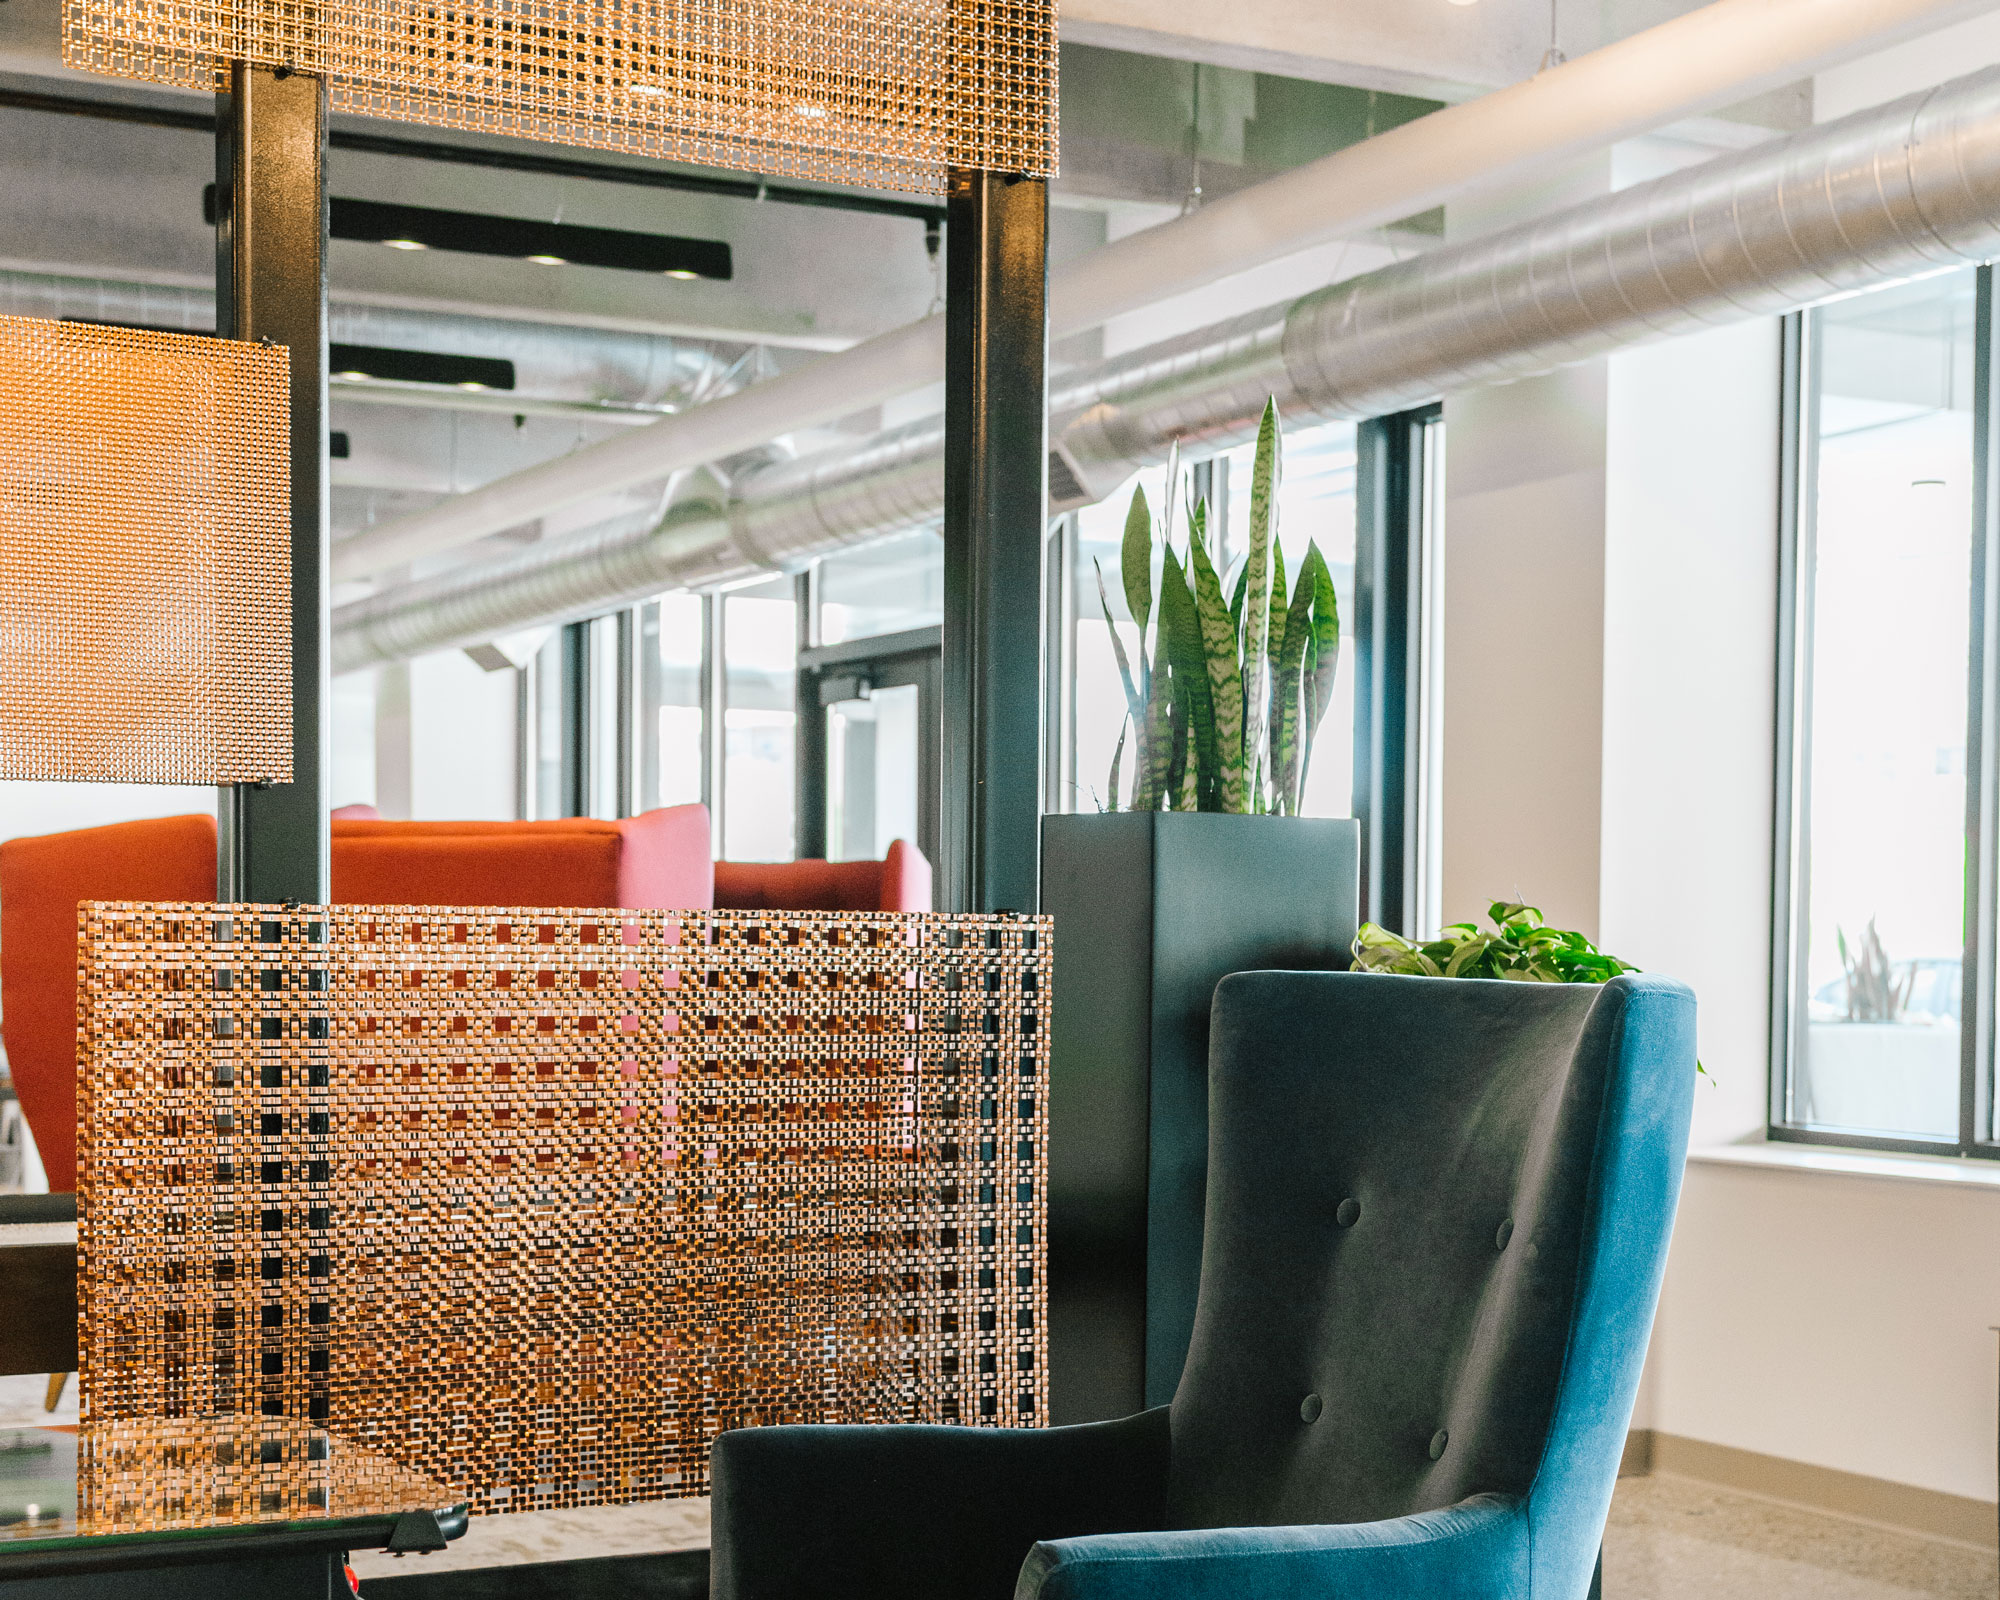 Copper plated panels of M22-22, M33-5, and S-12 are carefully arranged to partition off the seating areas while still allowing tenants and guests uninterrupted sightlines